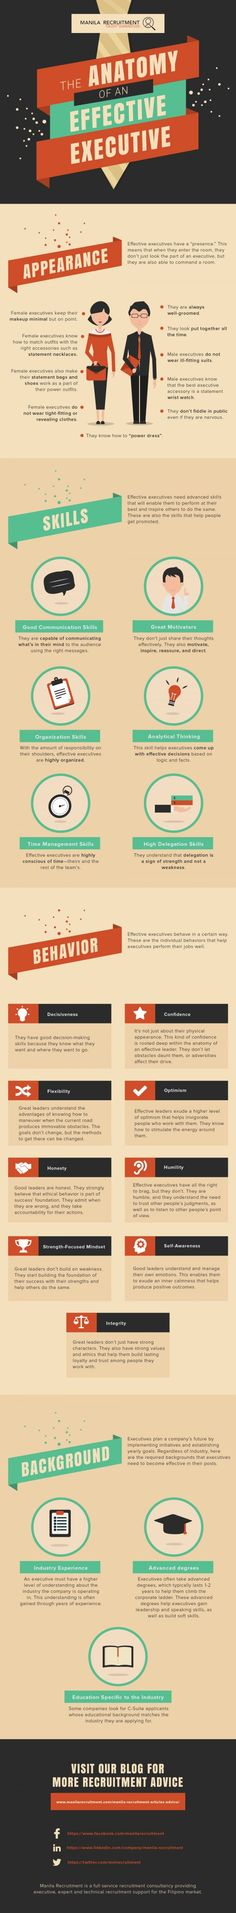 Infographic: Anatomy of an Effective Executive